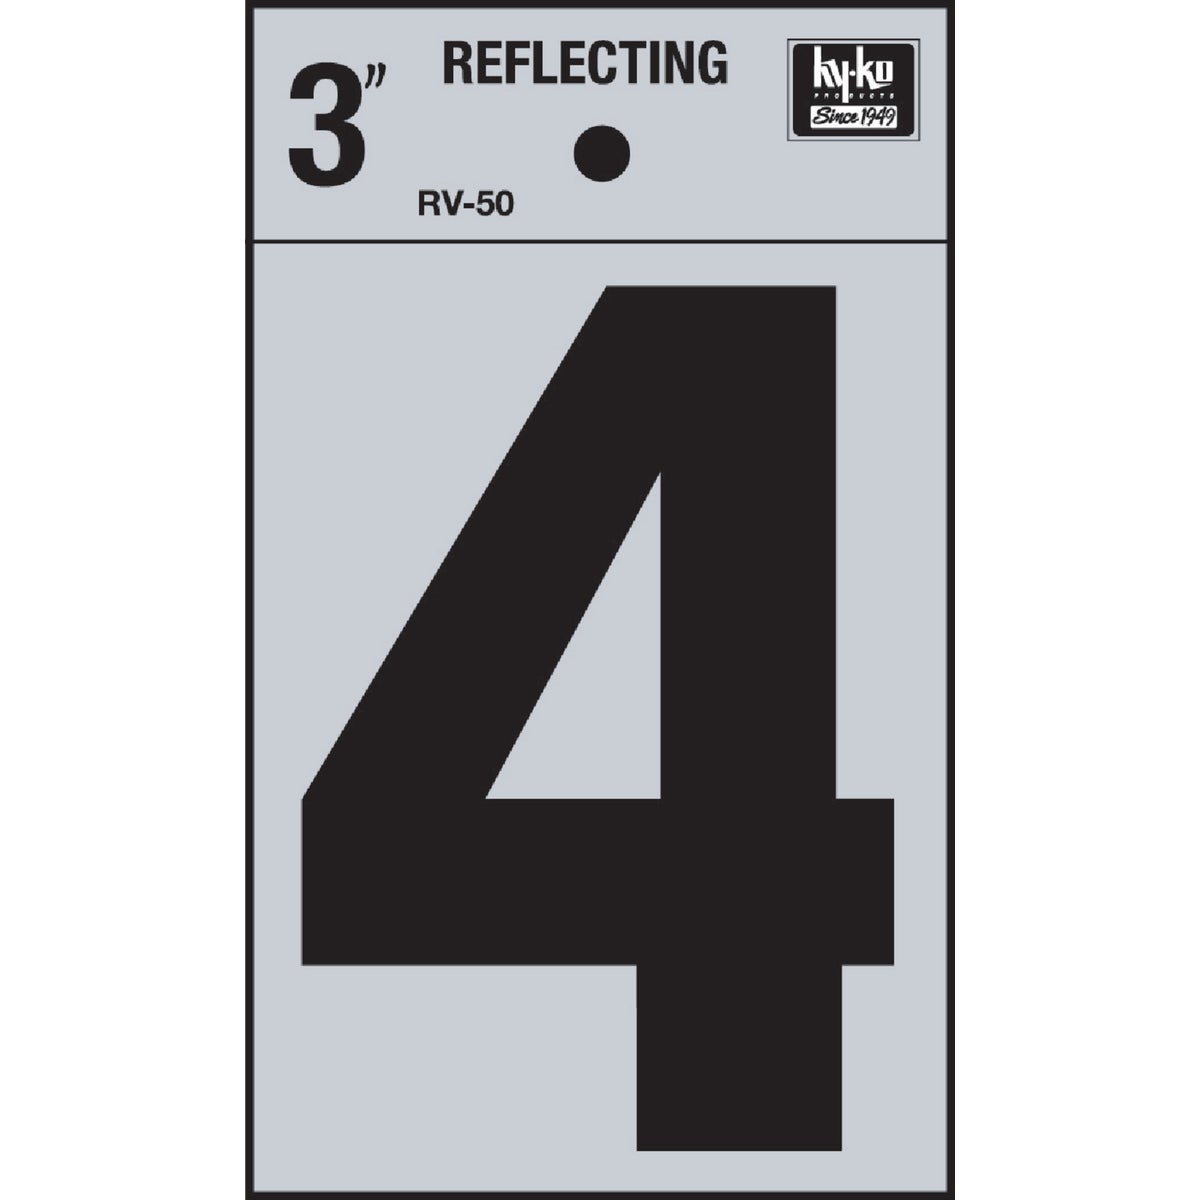 "3"" REFLECT NUMBER 4 - RV-50-4 by Hy Ko Prods Co"